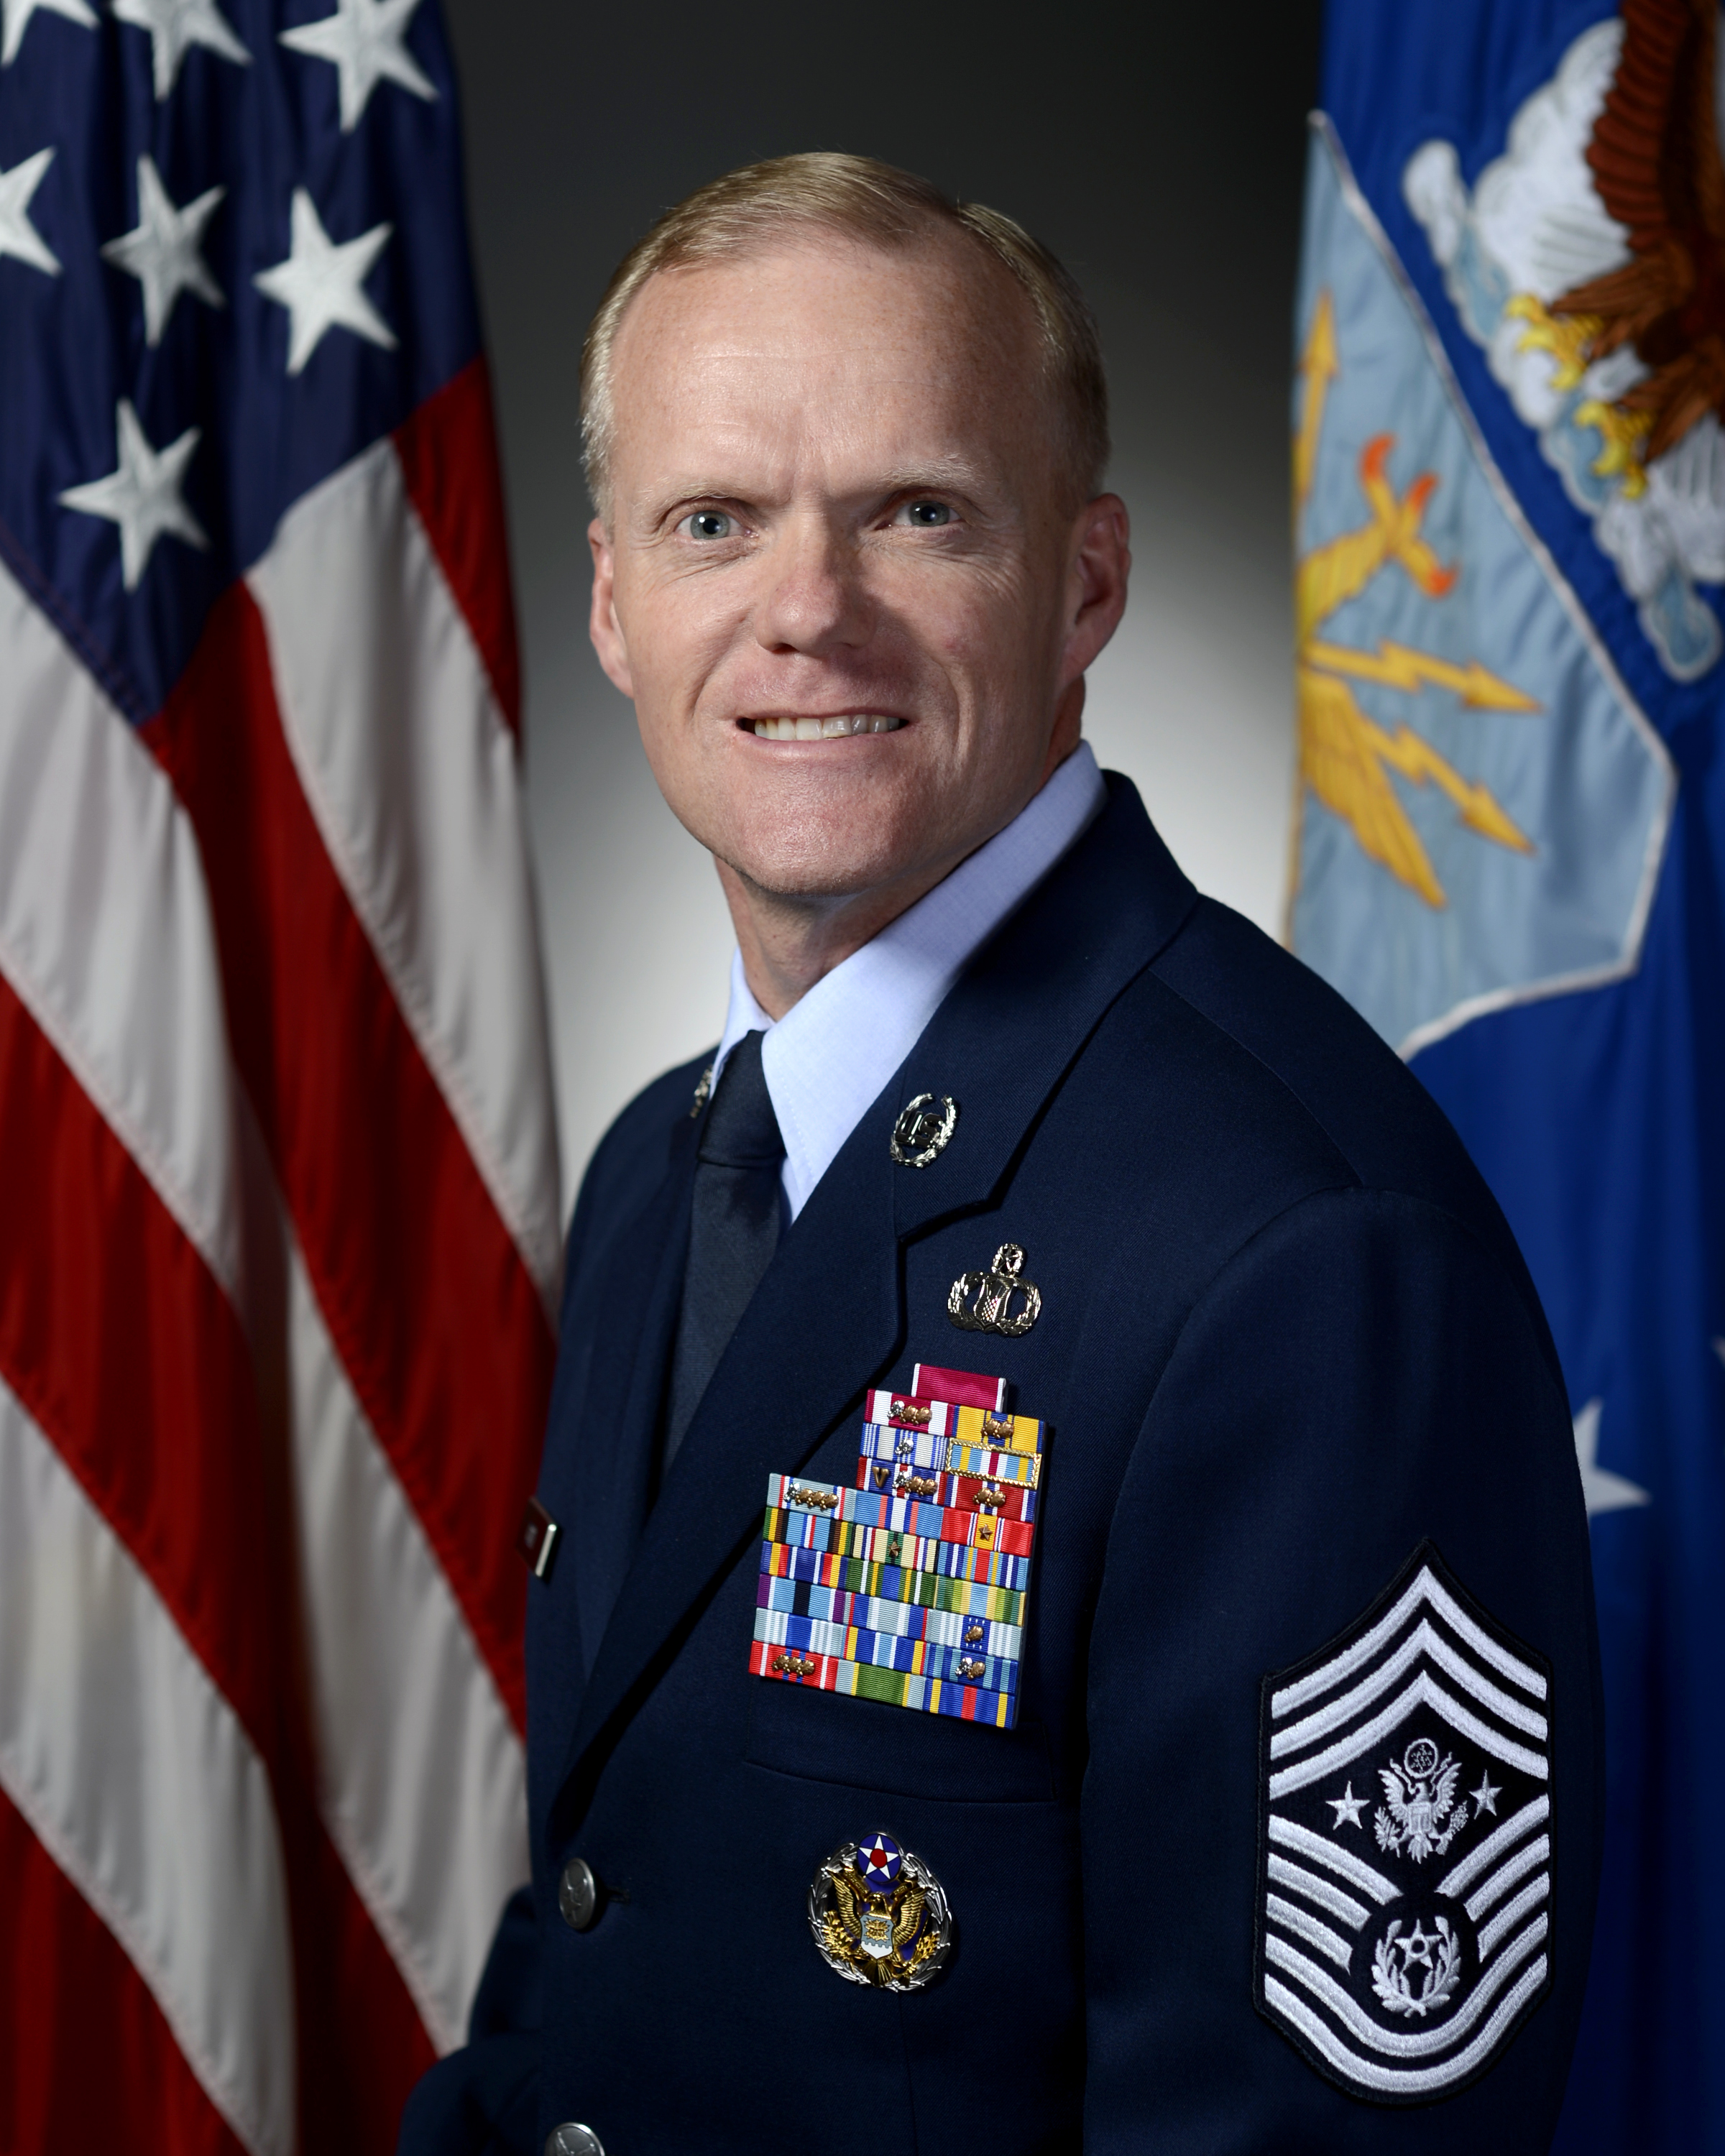 Biographies: CHIEF MASTER SERGEANT OF THE AIR FORCE JAMES A. CODY > U.S